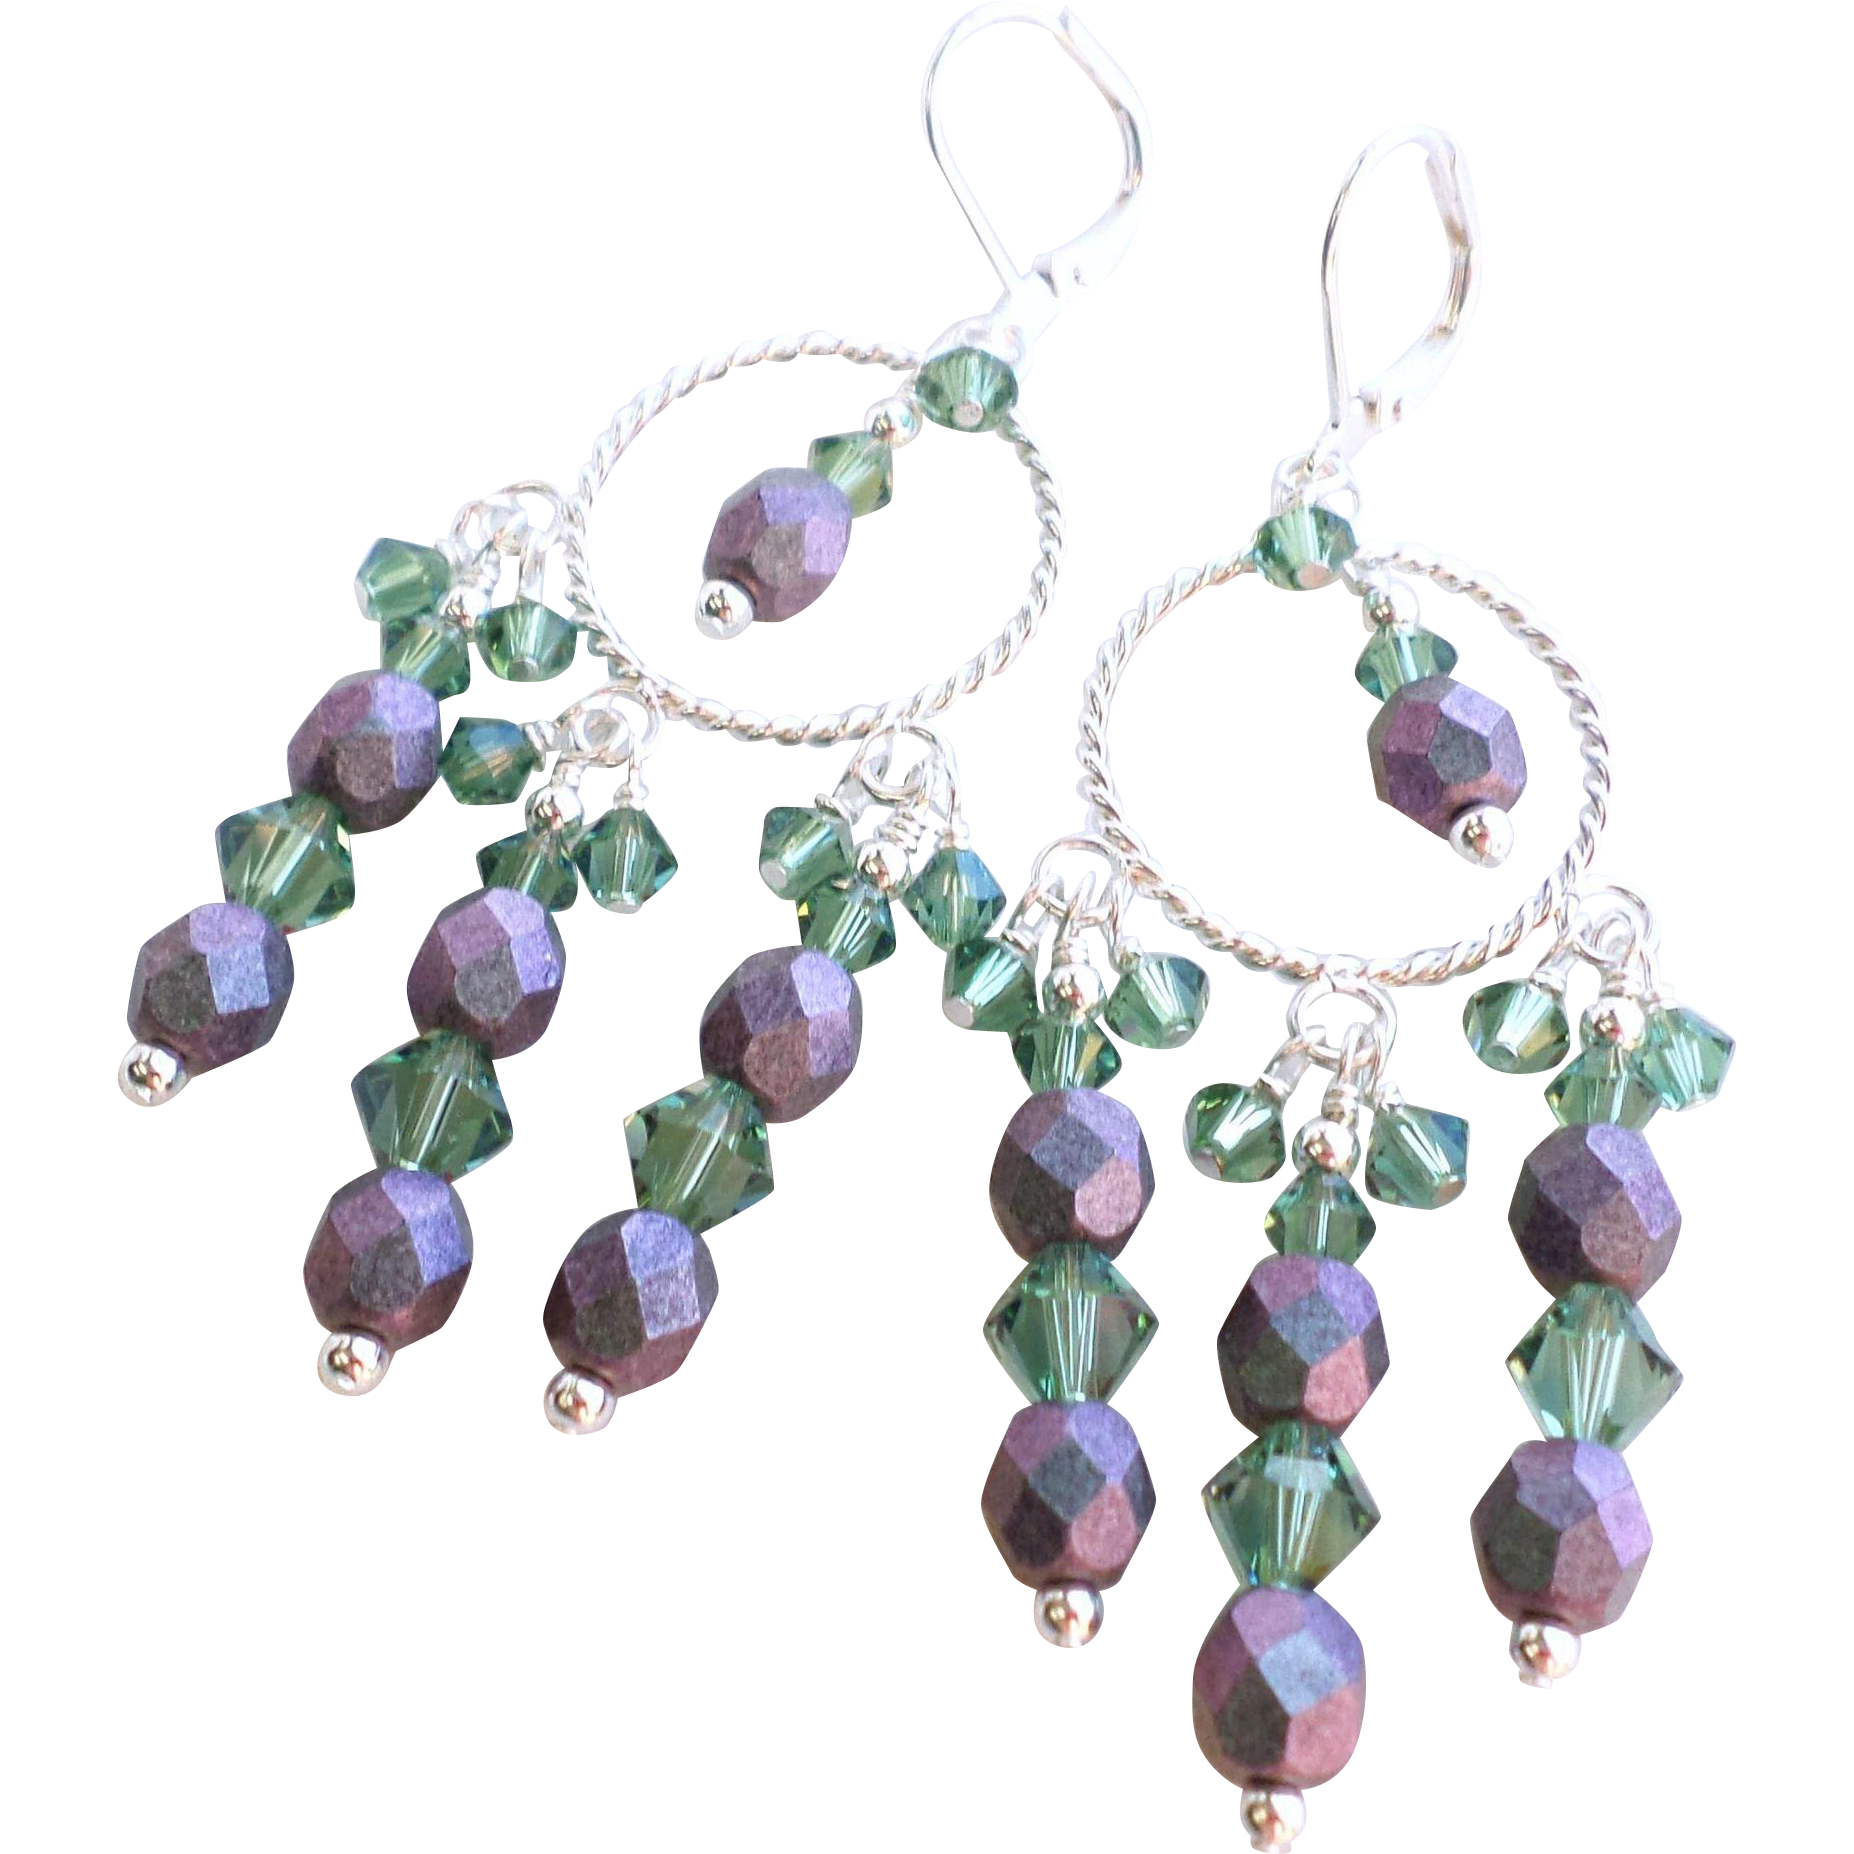 Swarovski Crystal Chandelier Earrings in Purple and Green With Czech Fire Polished Glass